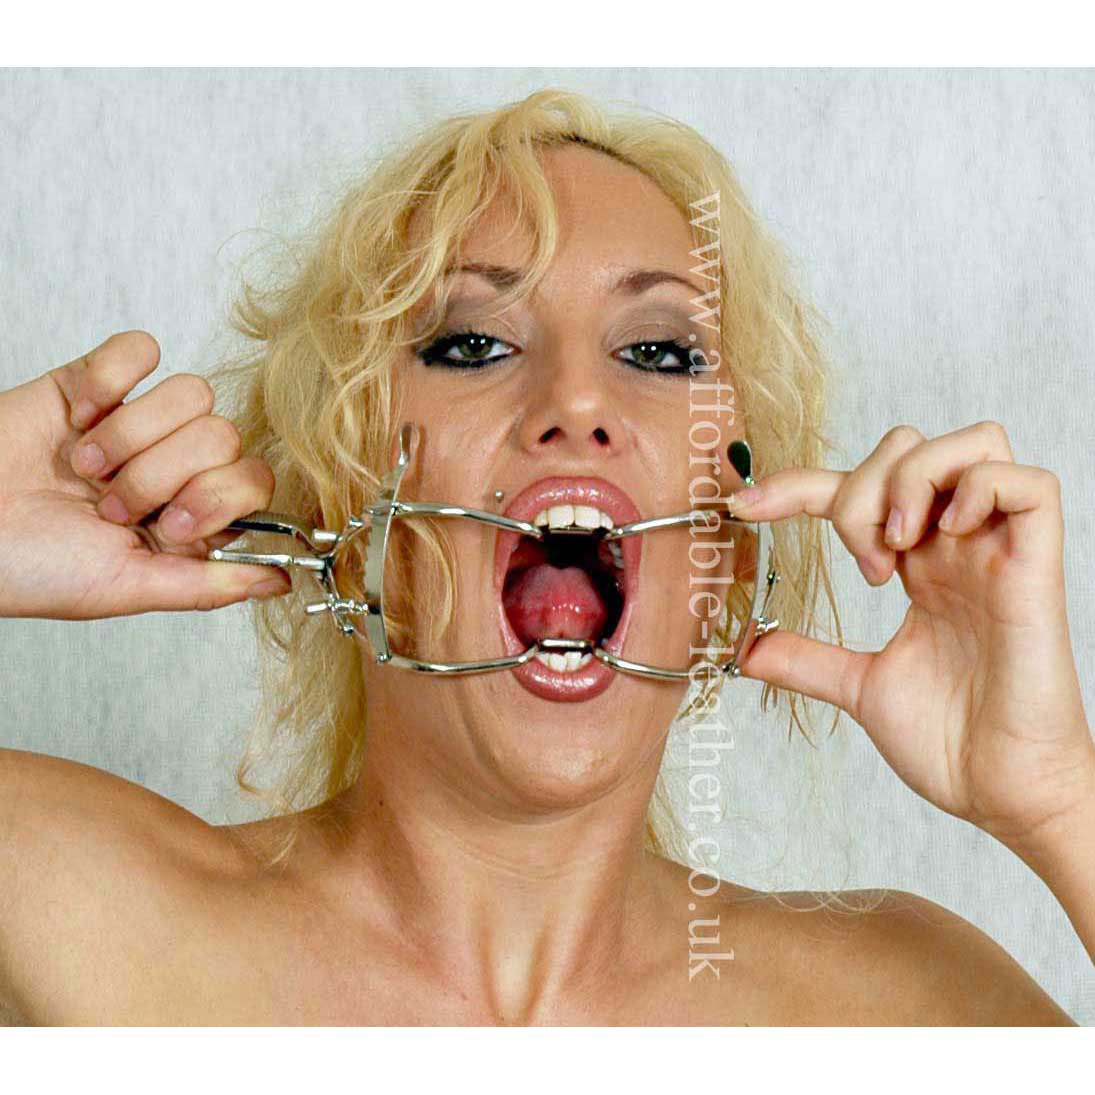 GAG 16 - Whitehead Stainless Steel Dental Gag